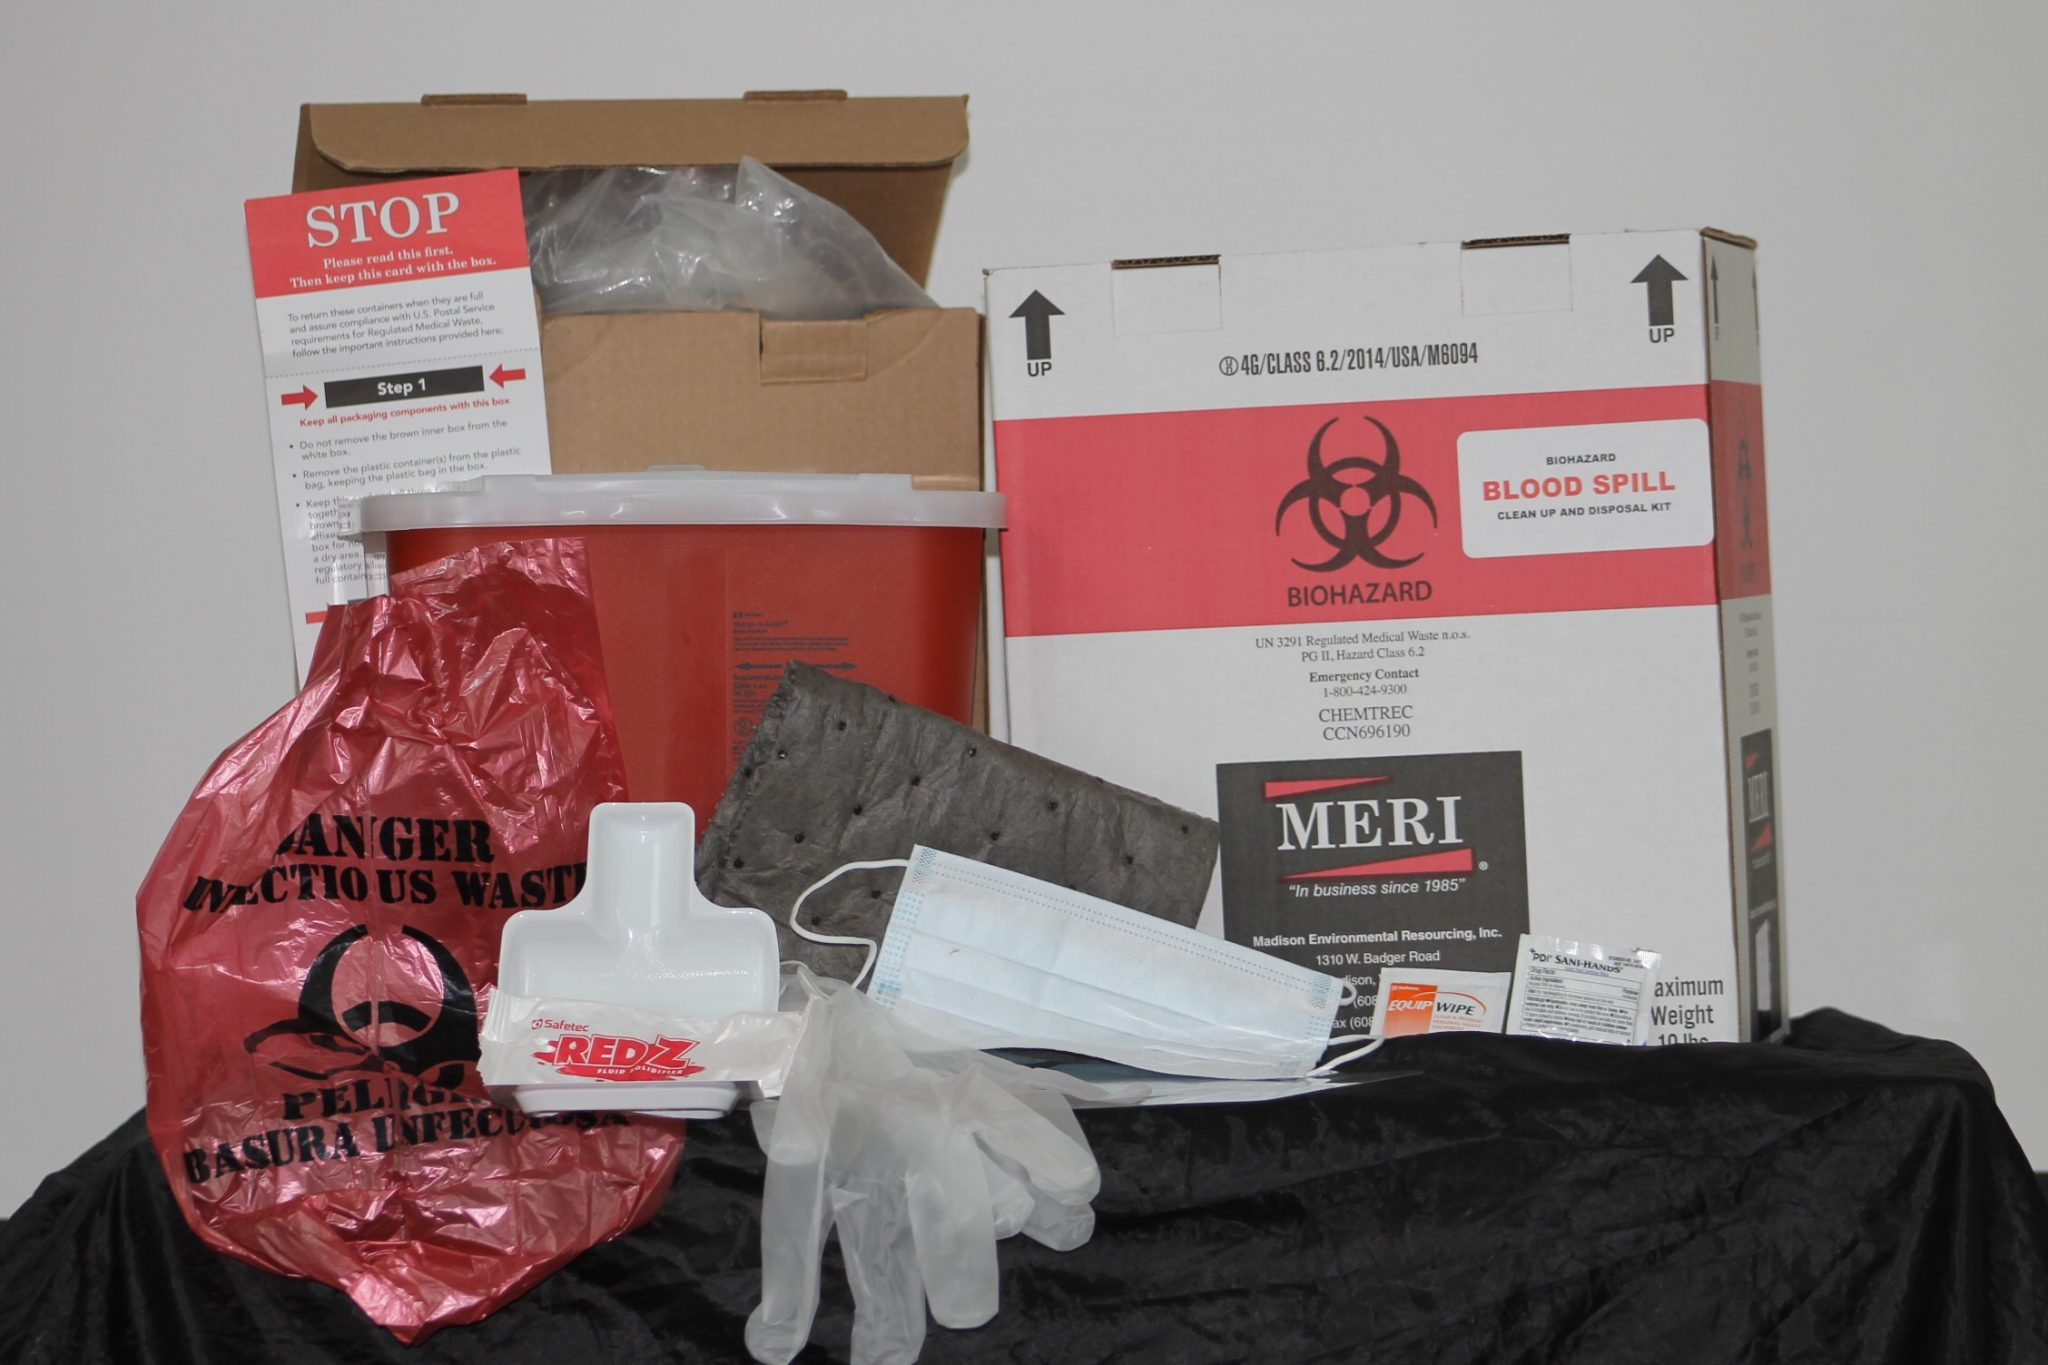 Biohazard Blood Spill Clean Up & Disposal Kit